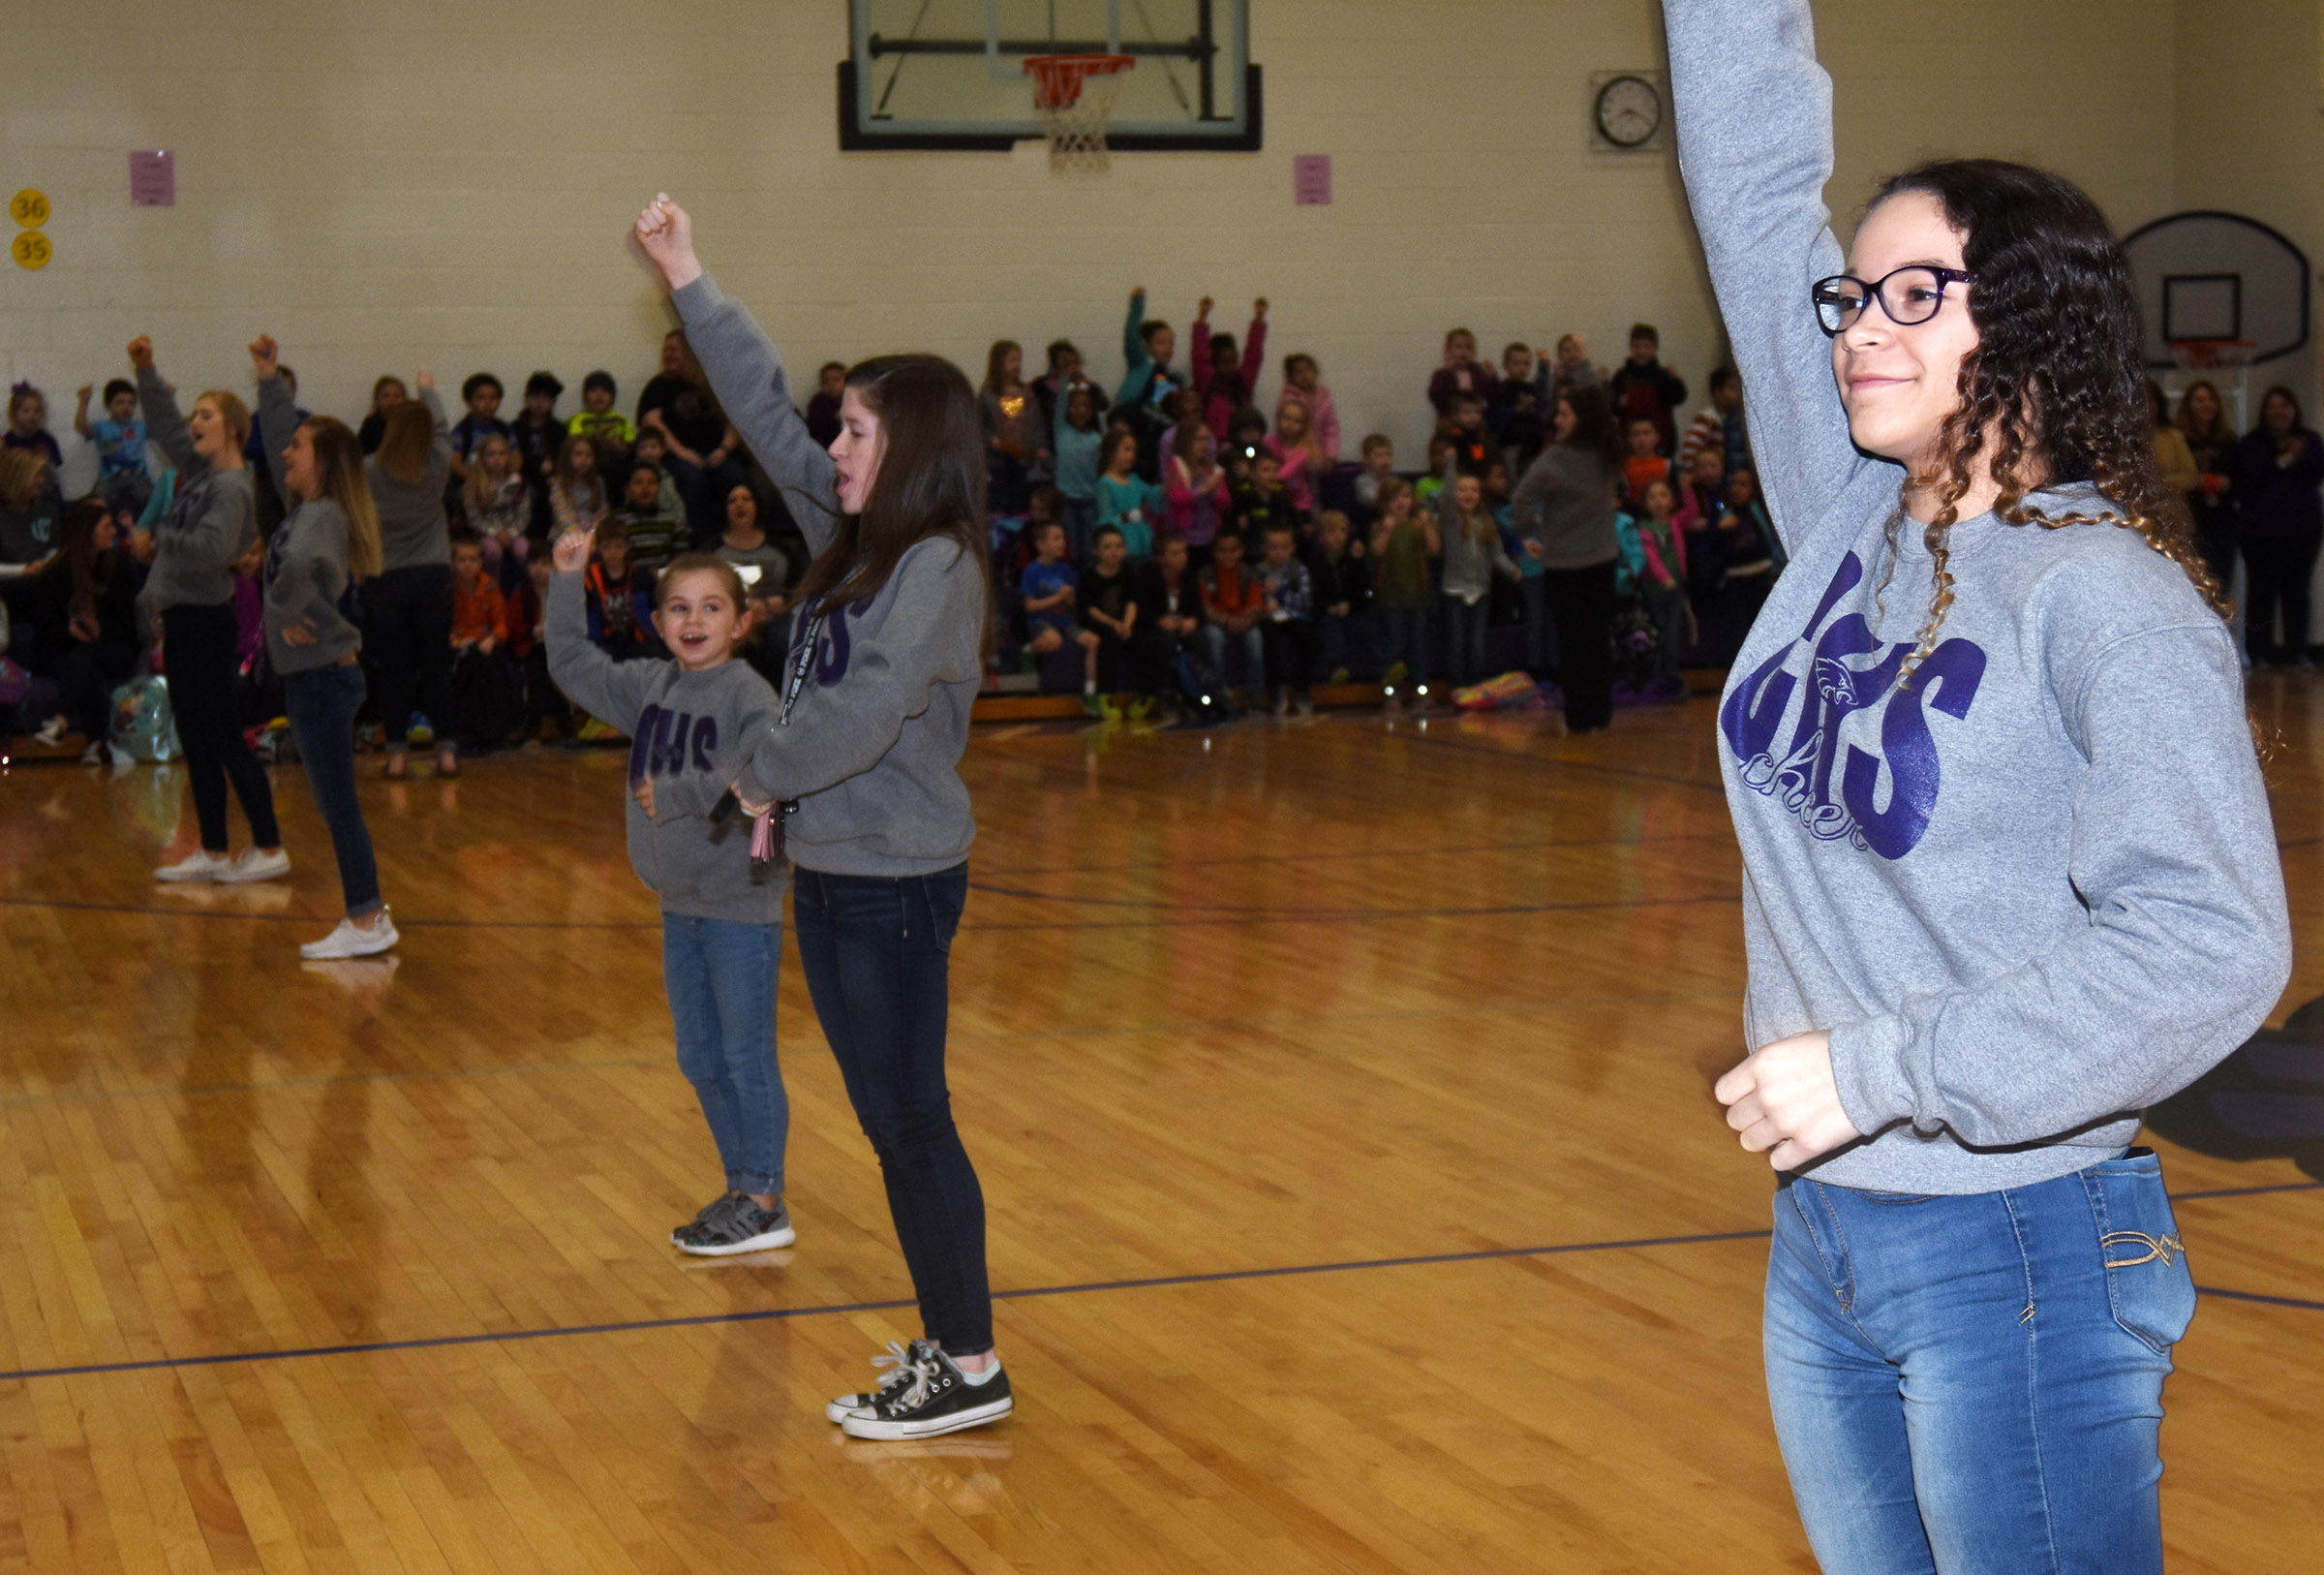 CHS sophomore Taliyah Hazelwood leads CES students in a cheer.